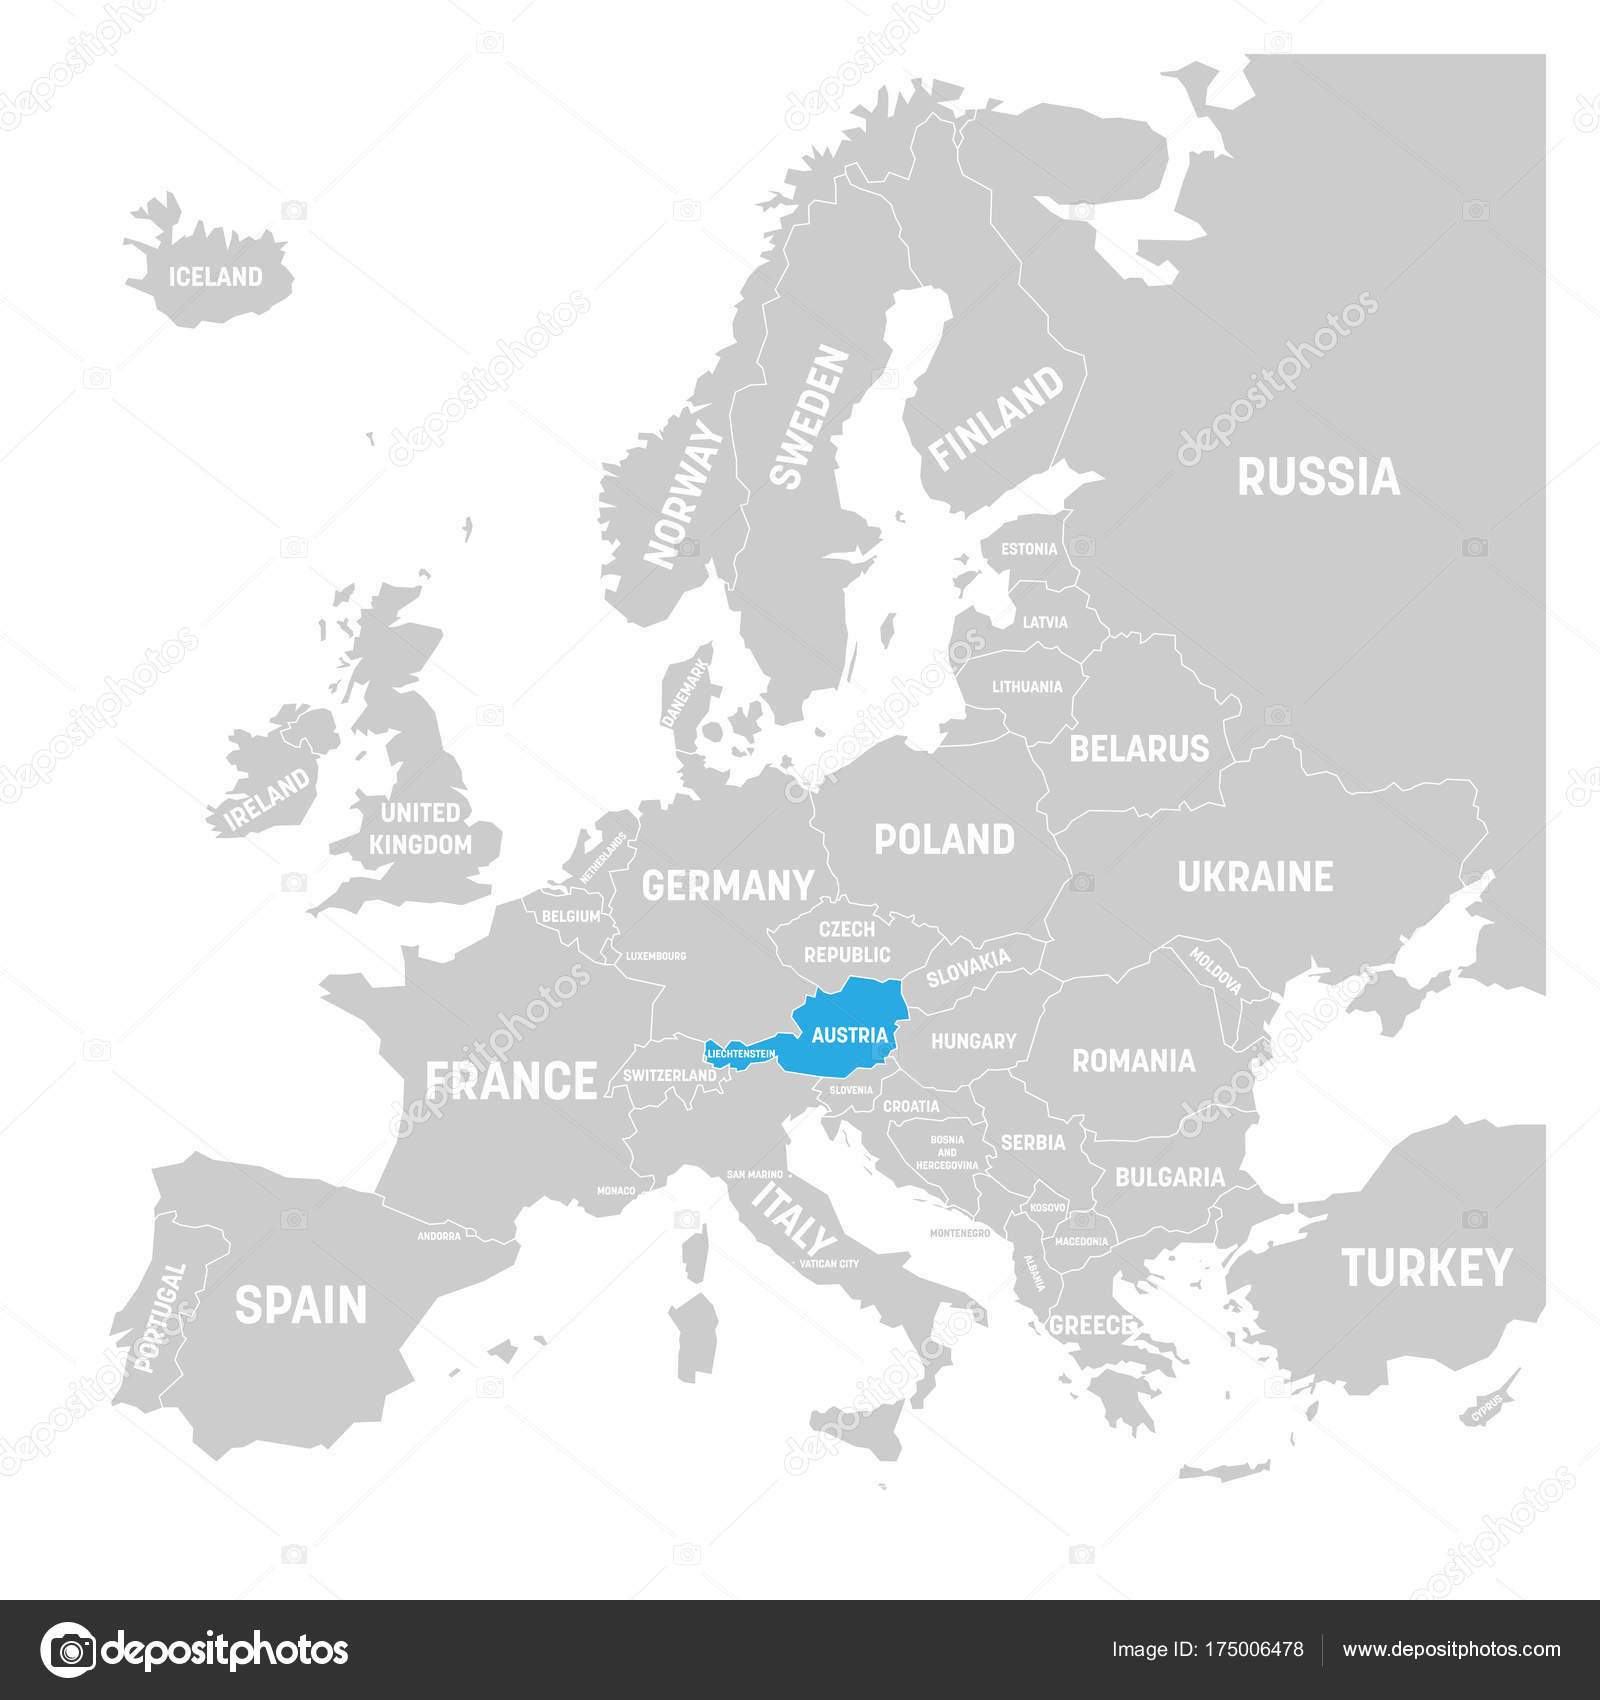 Austria Marked By Blue In Grey Political Map Of Europe. Vector Illustration  U2014 Stock Vector